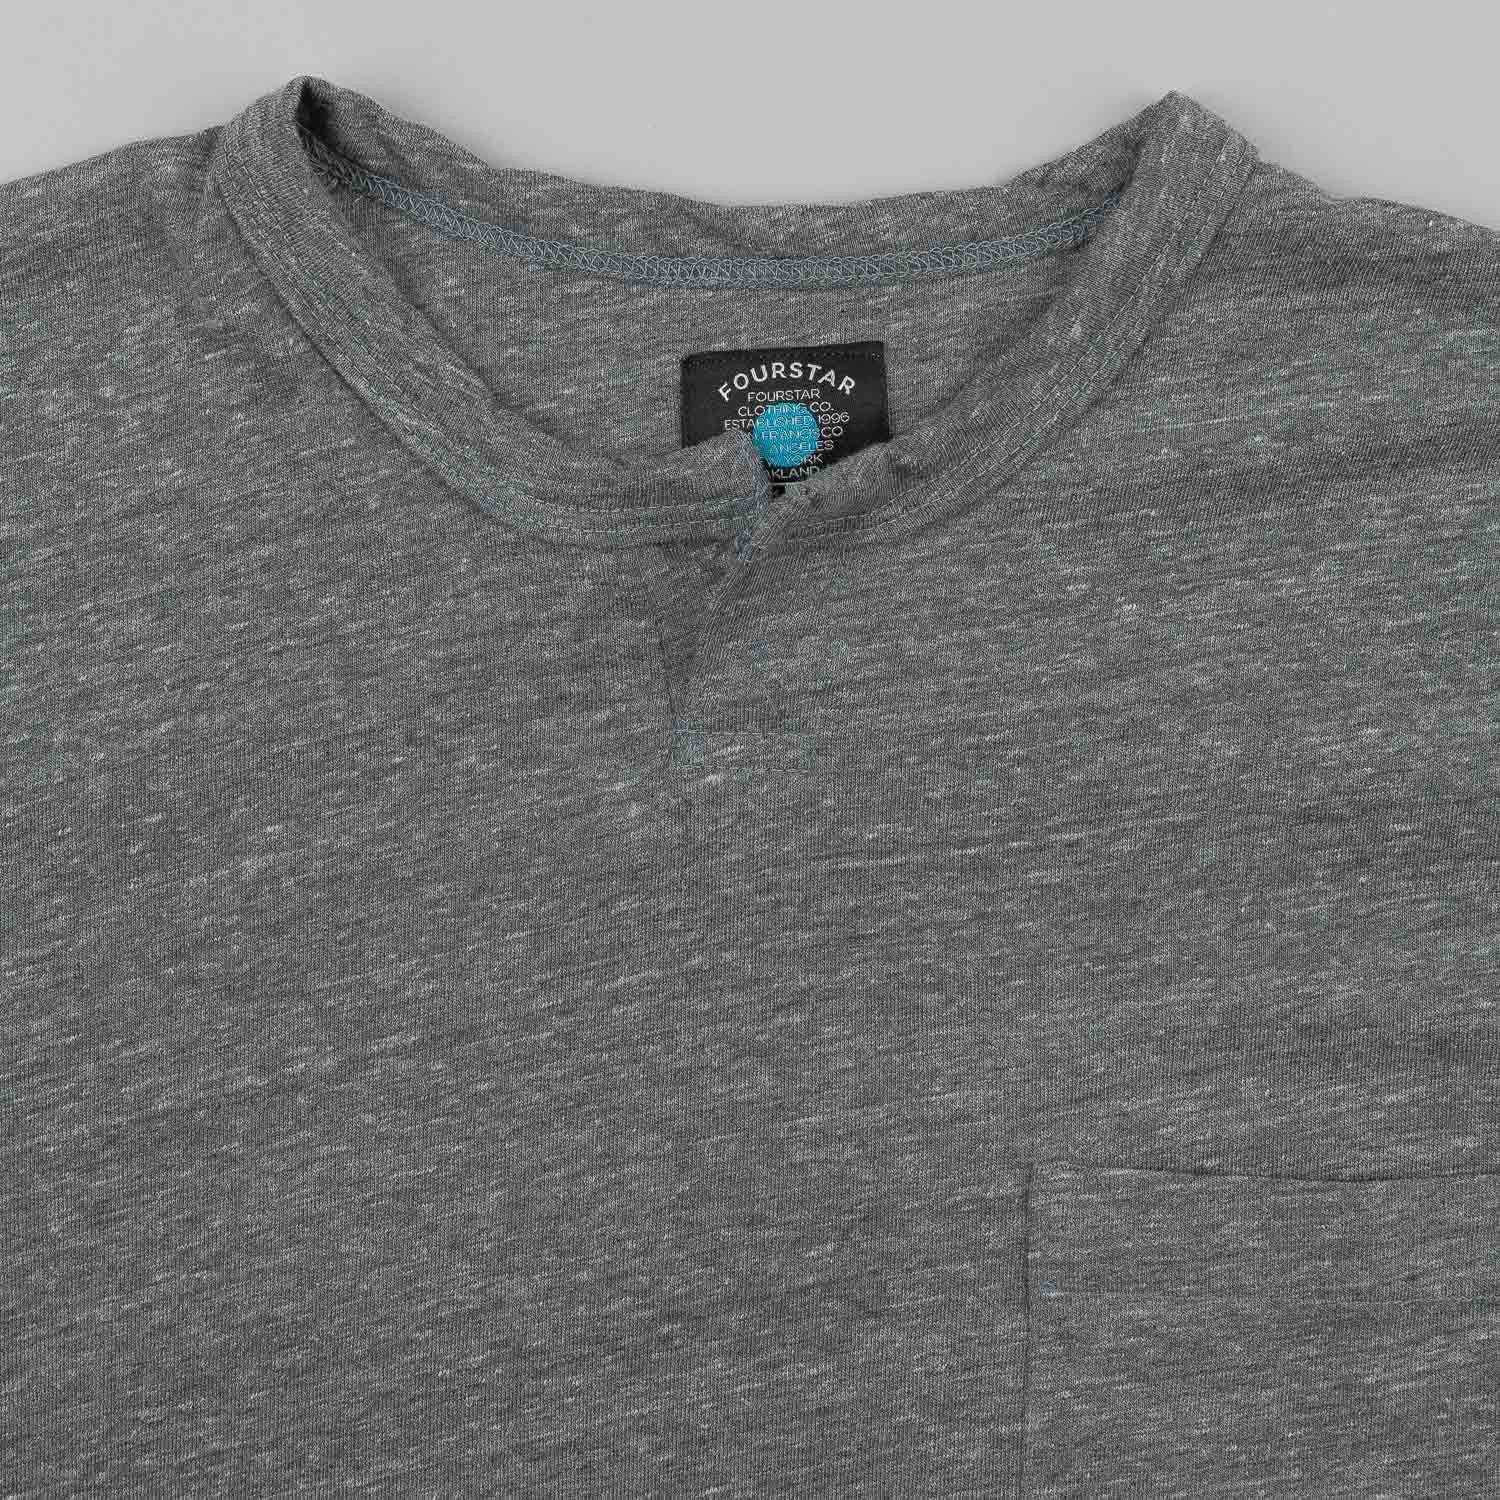 Fourstar Pirate Crew Pocket T-Shirt - Gunmetal Heather